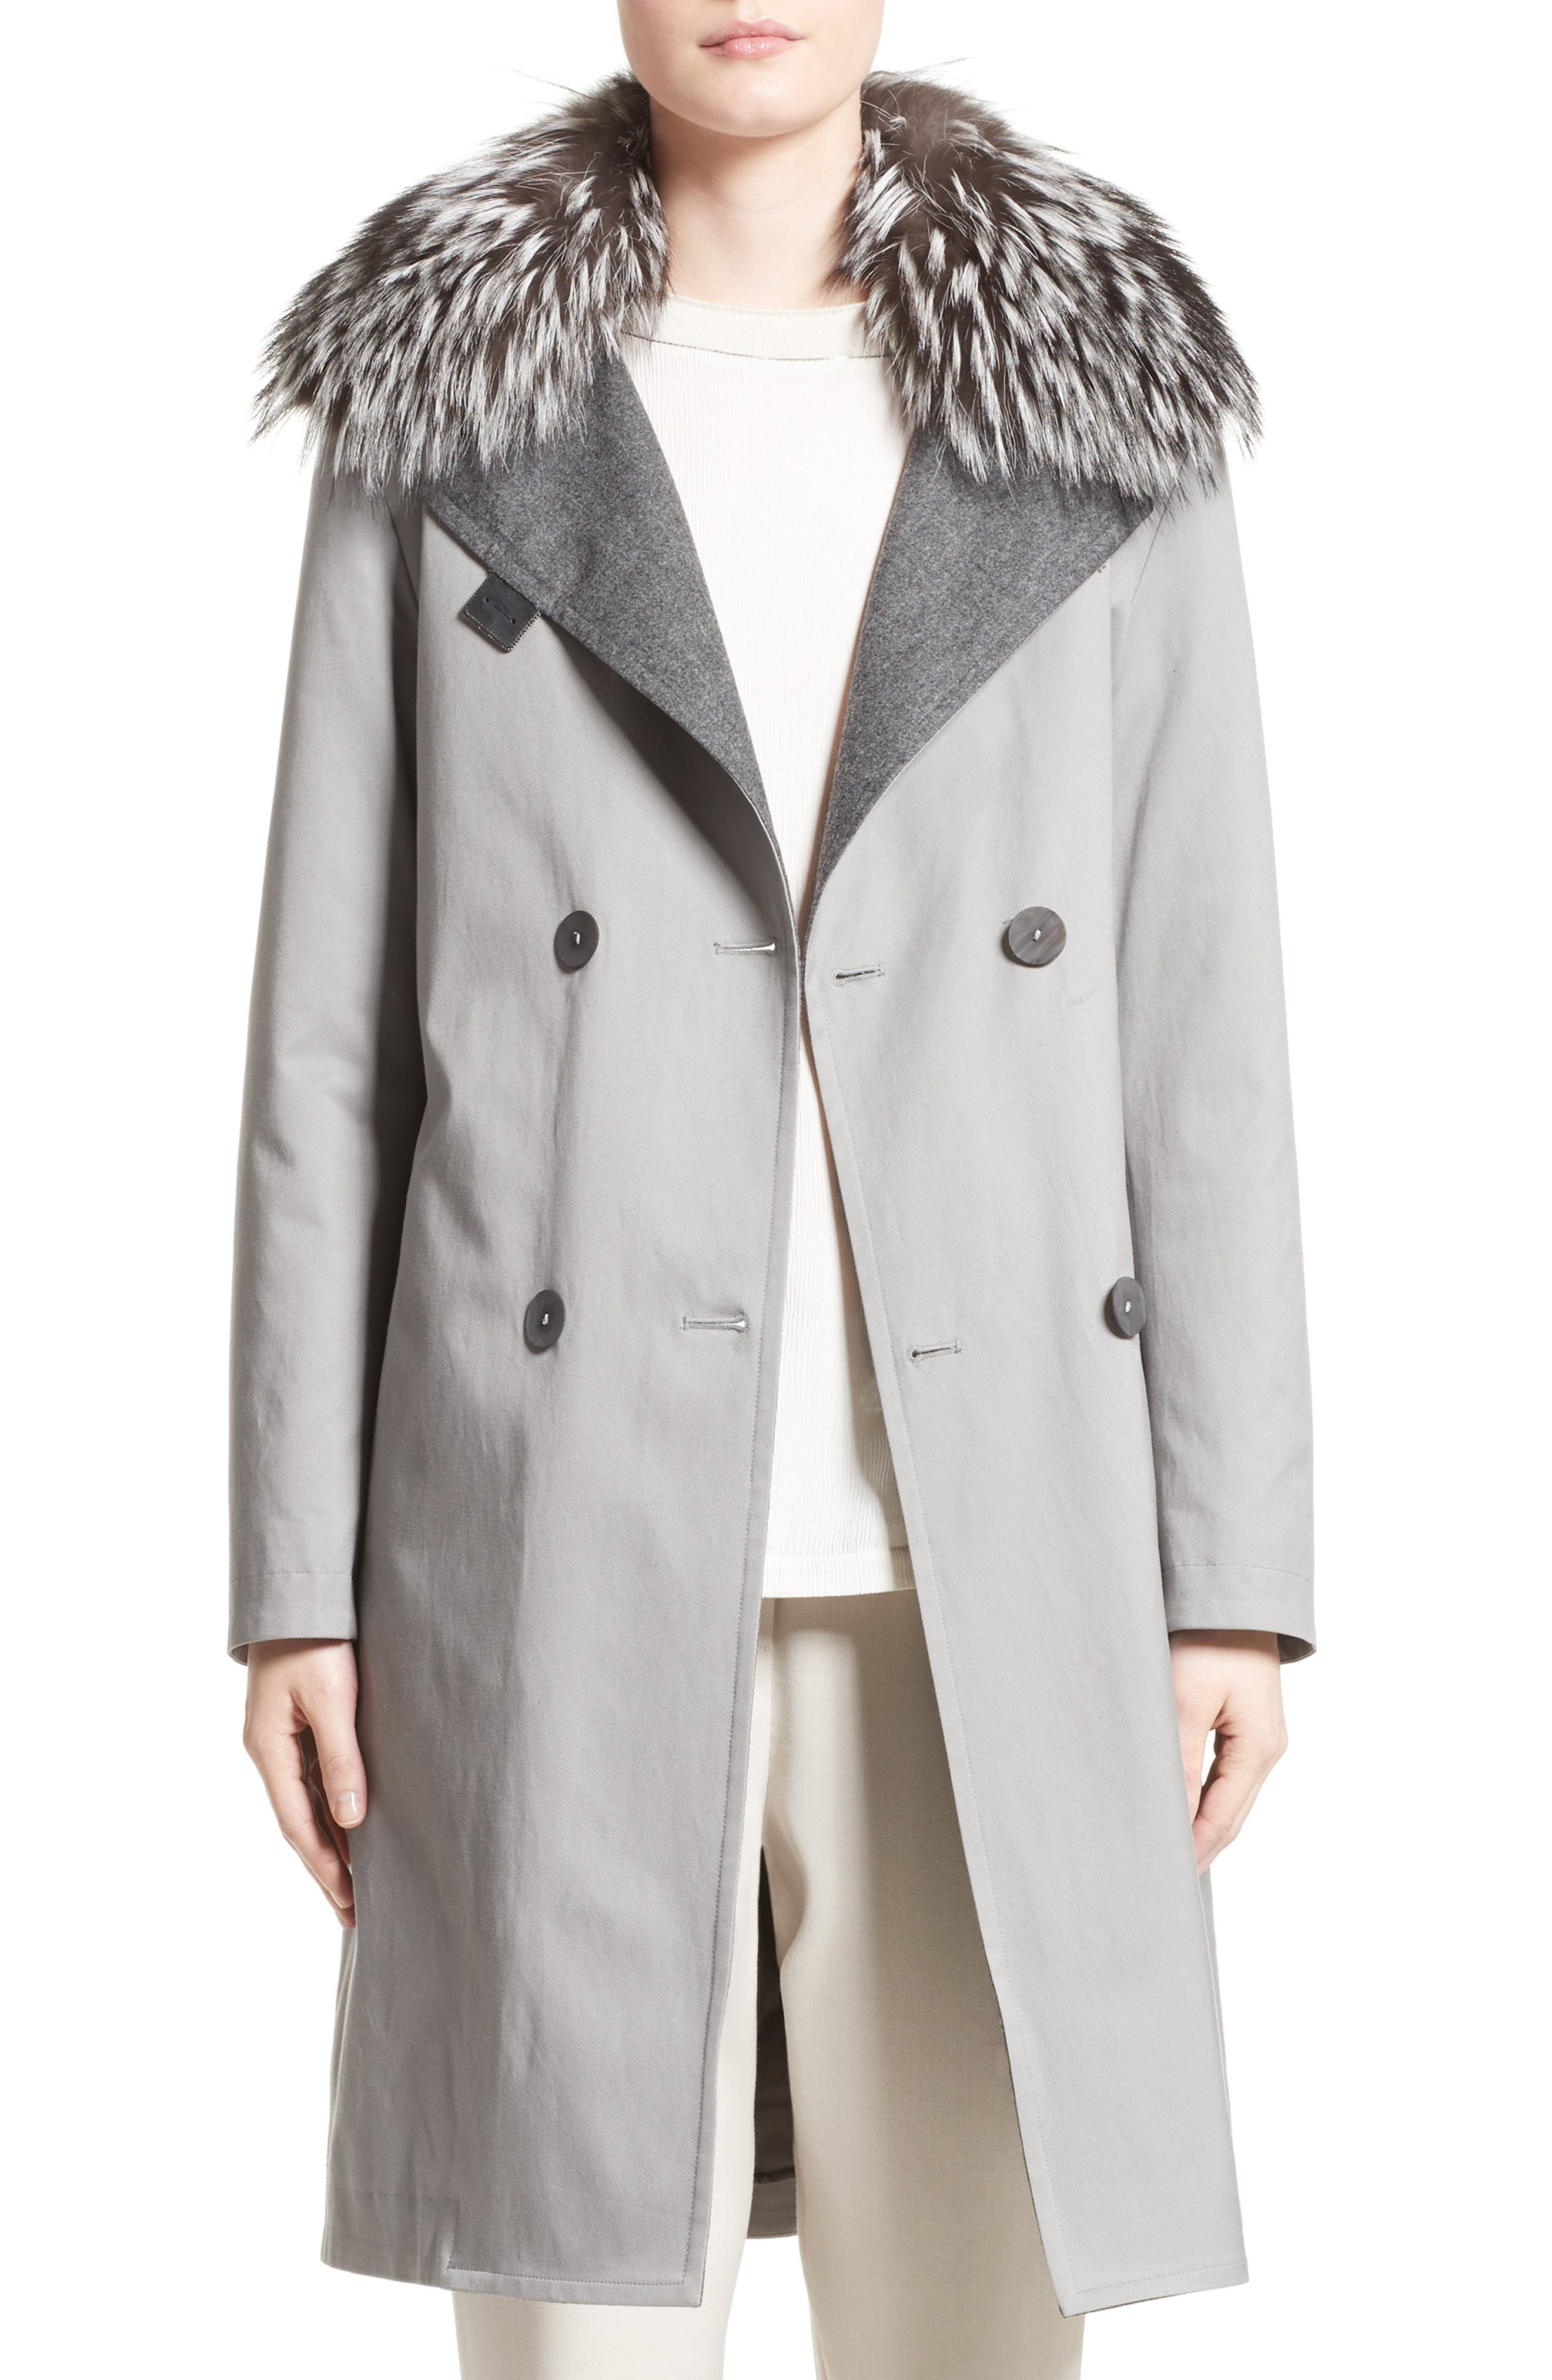 Fabiana Filippi Water Repellent Gabardine Trench Coat with Genuine Fox Fur Collar